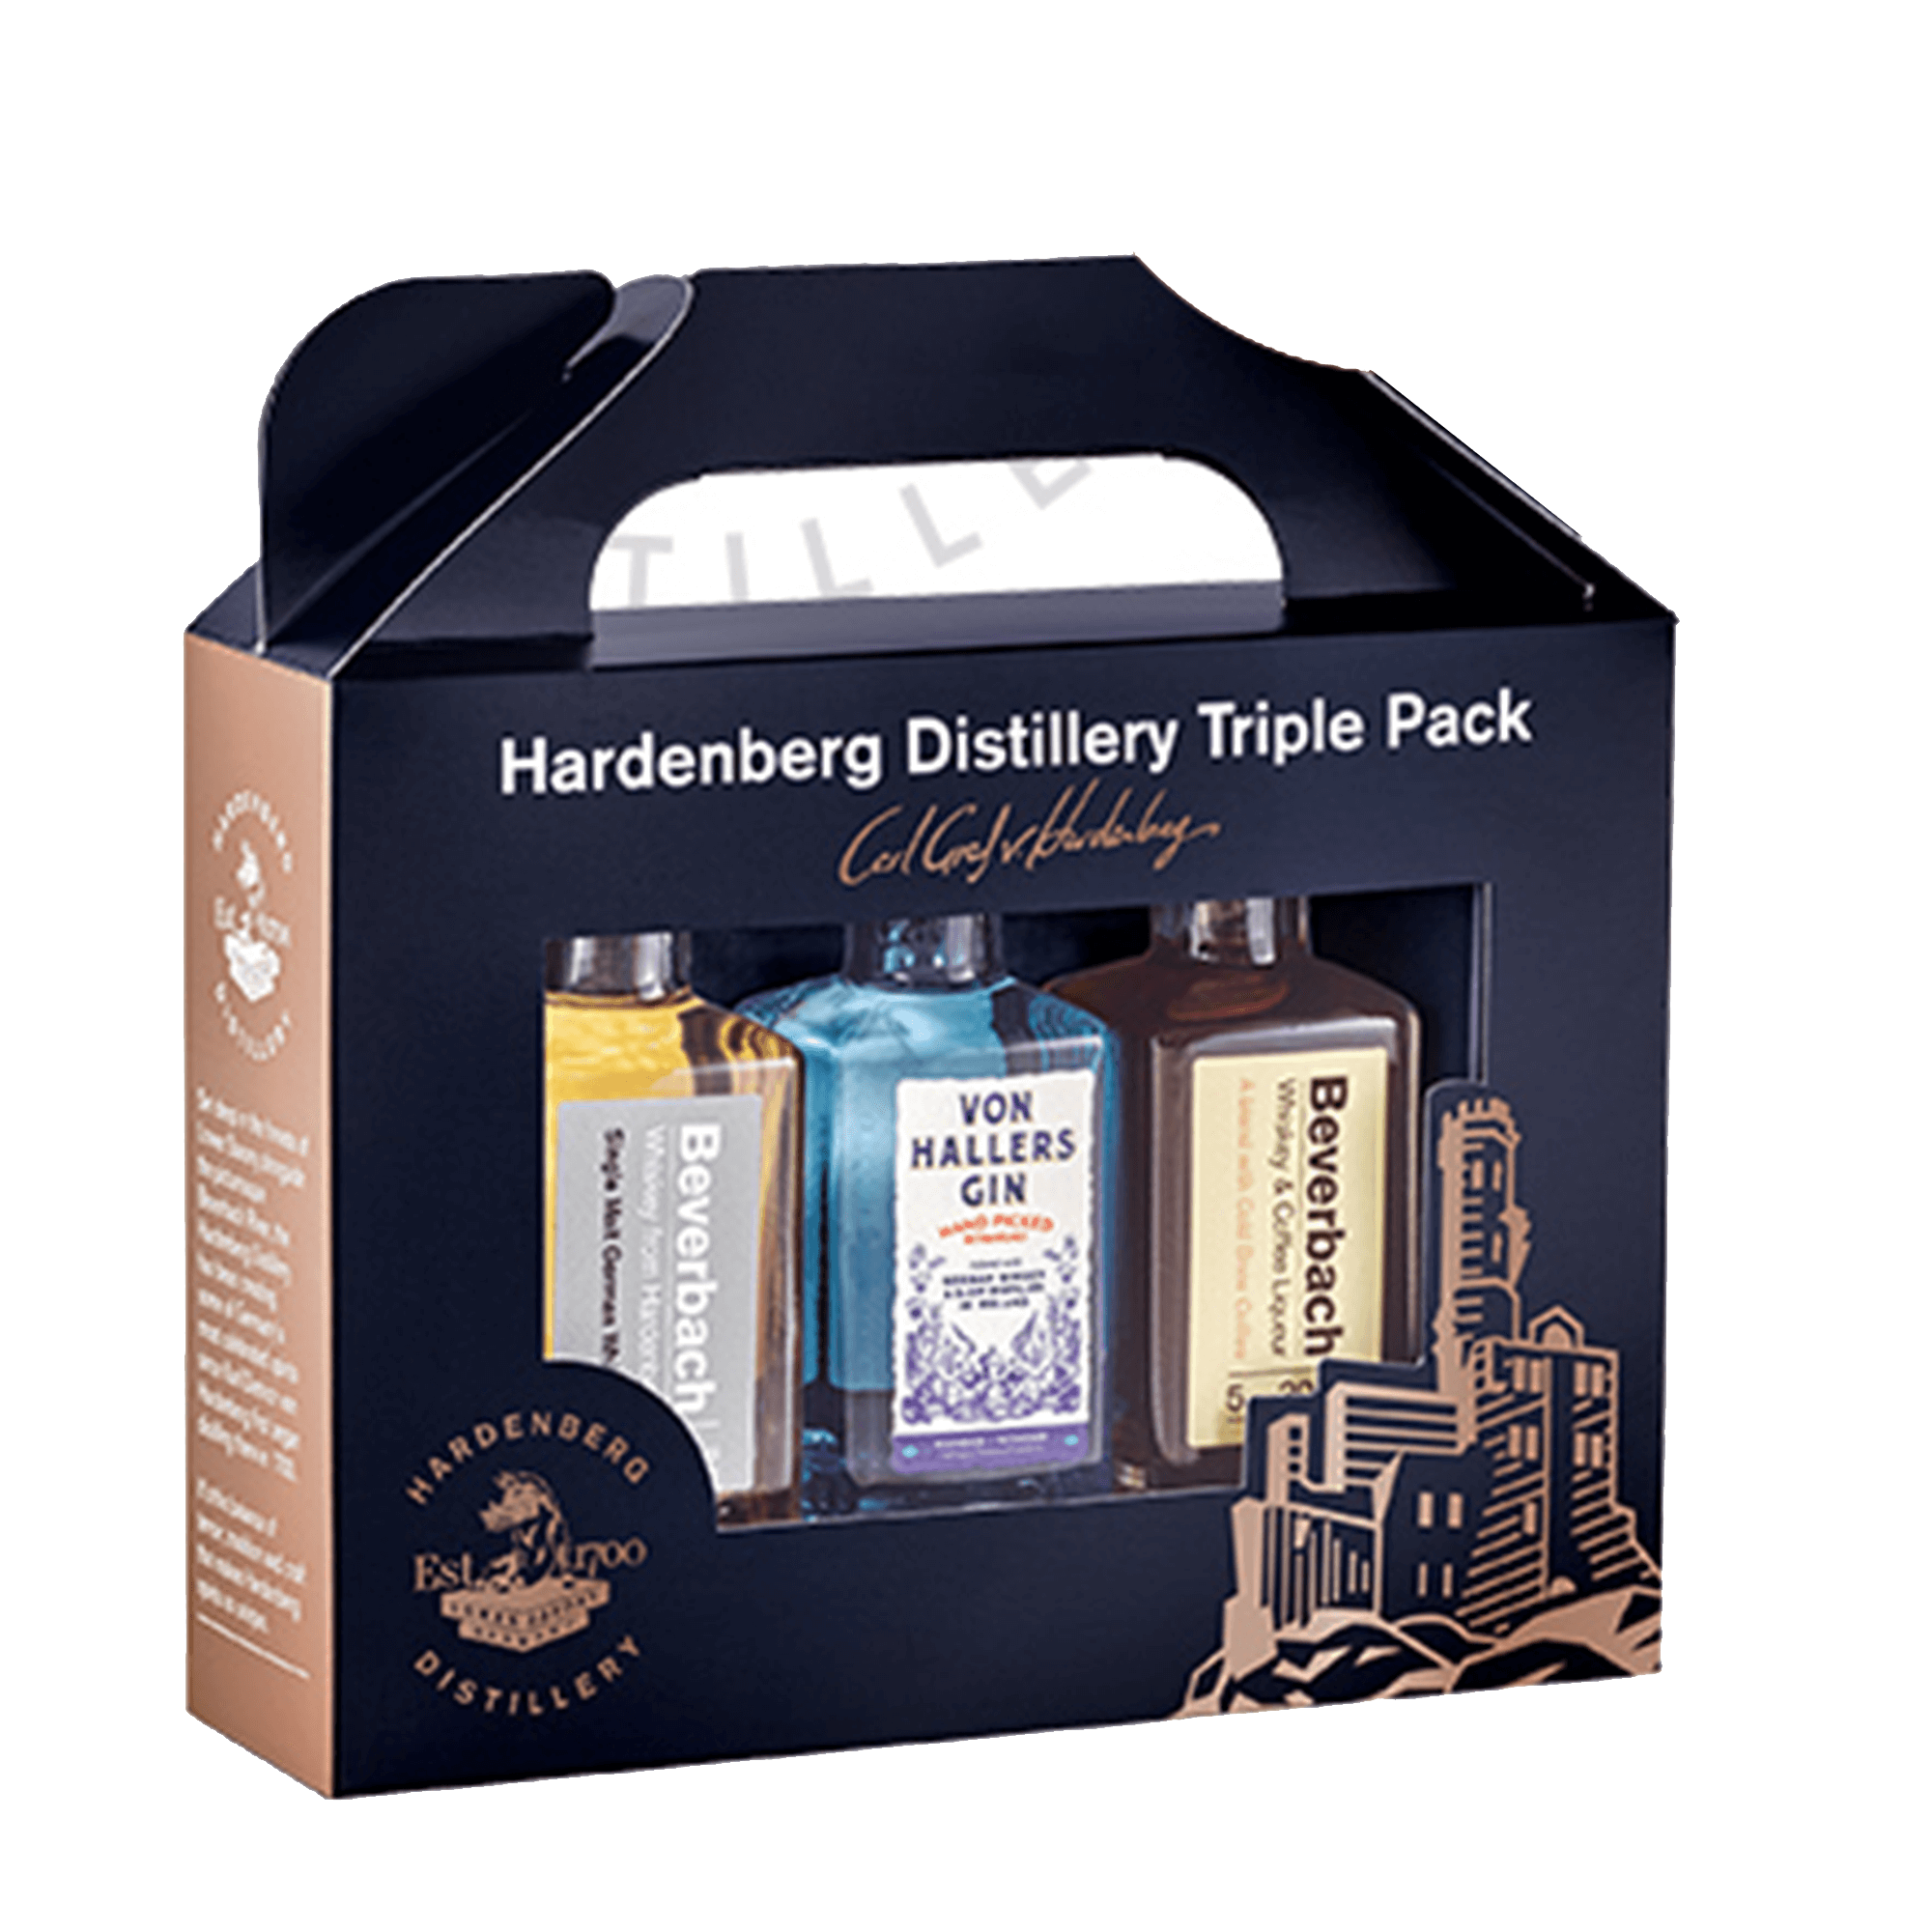 Hardenberg Distillery Triple Pack